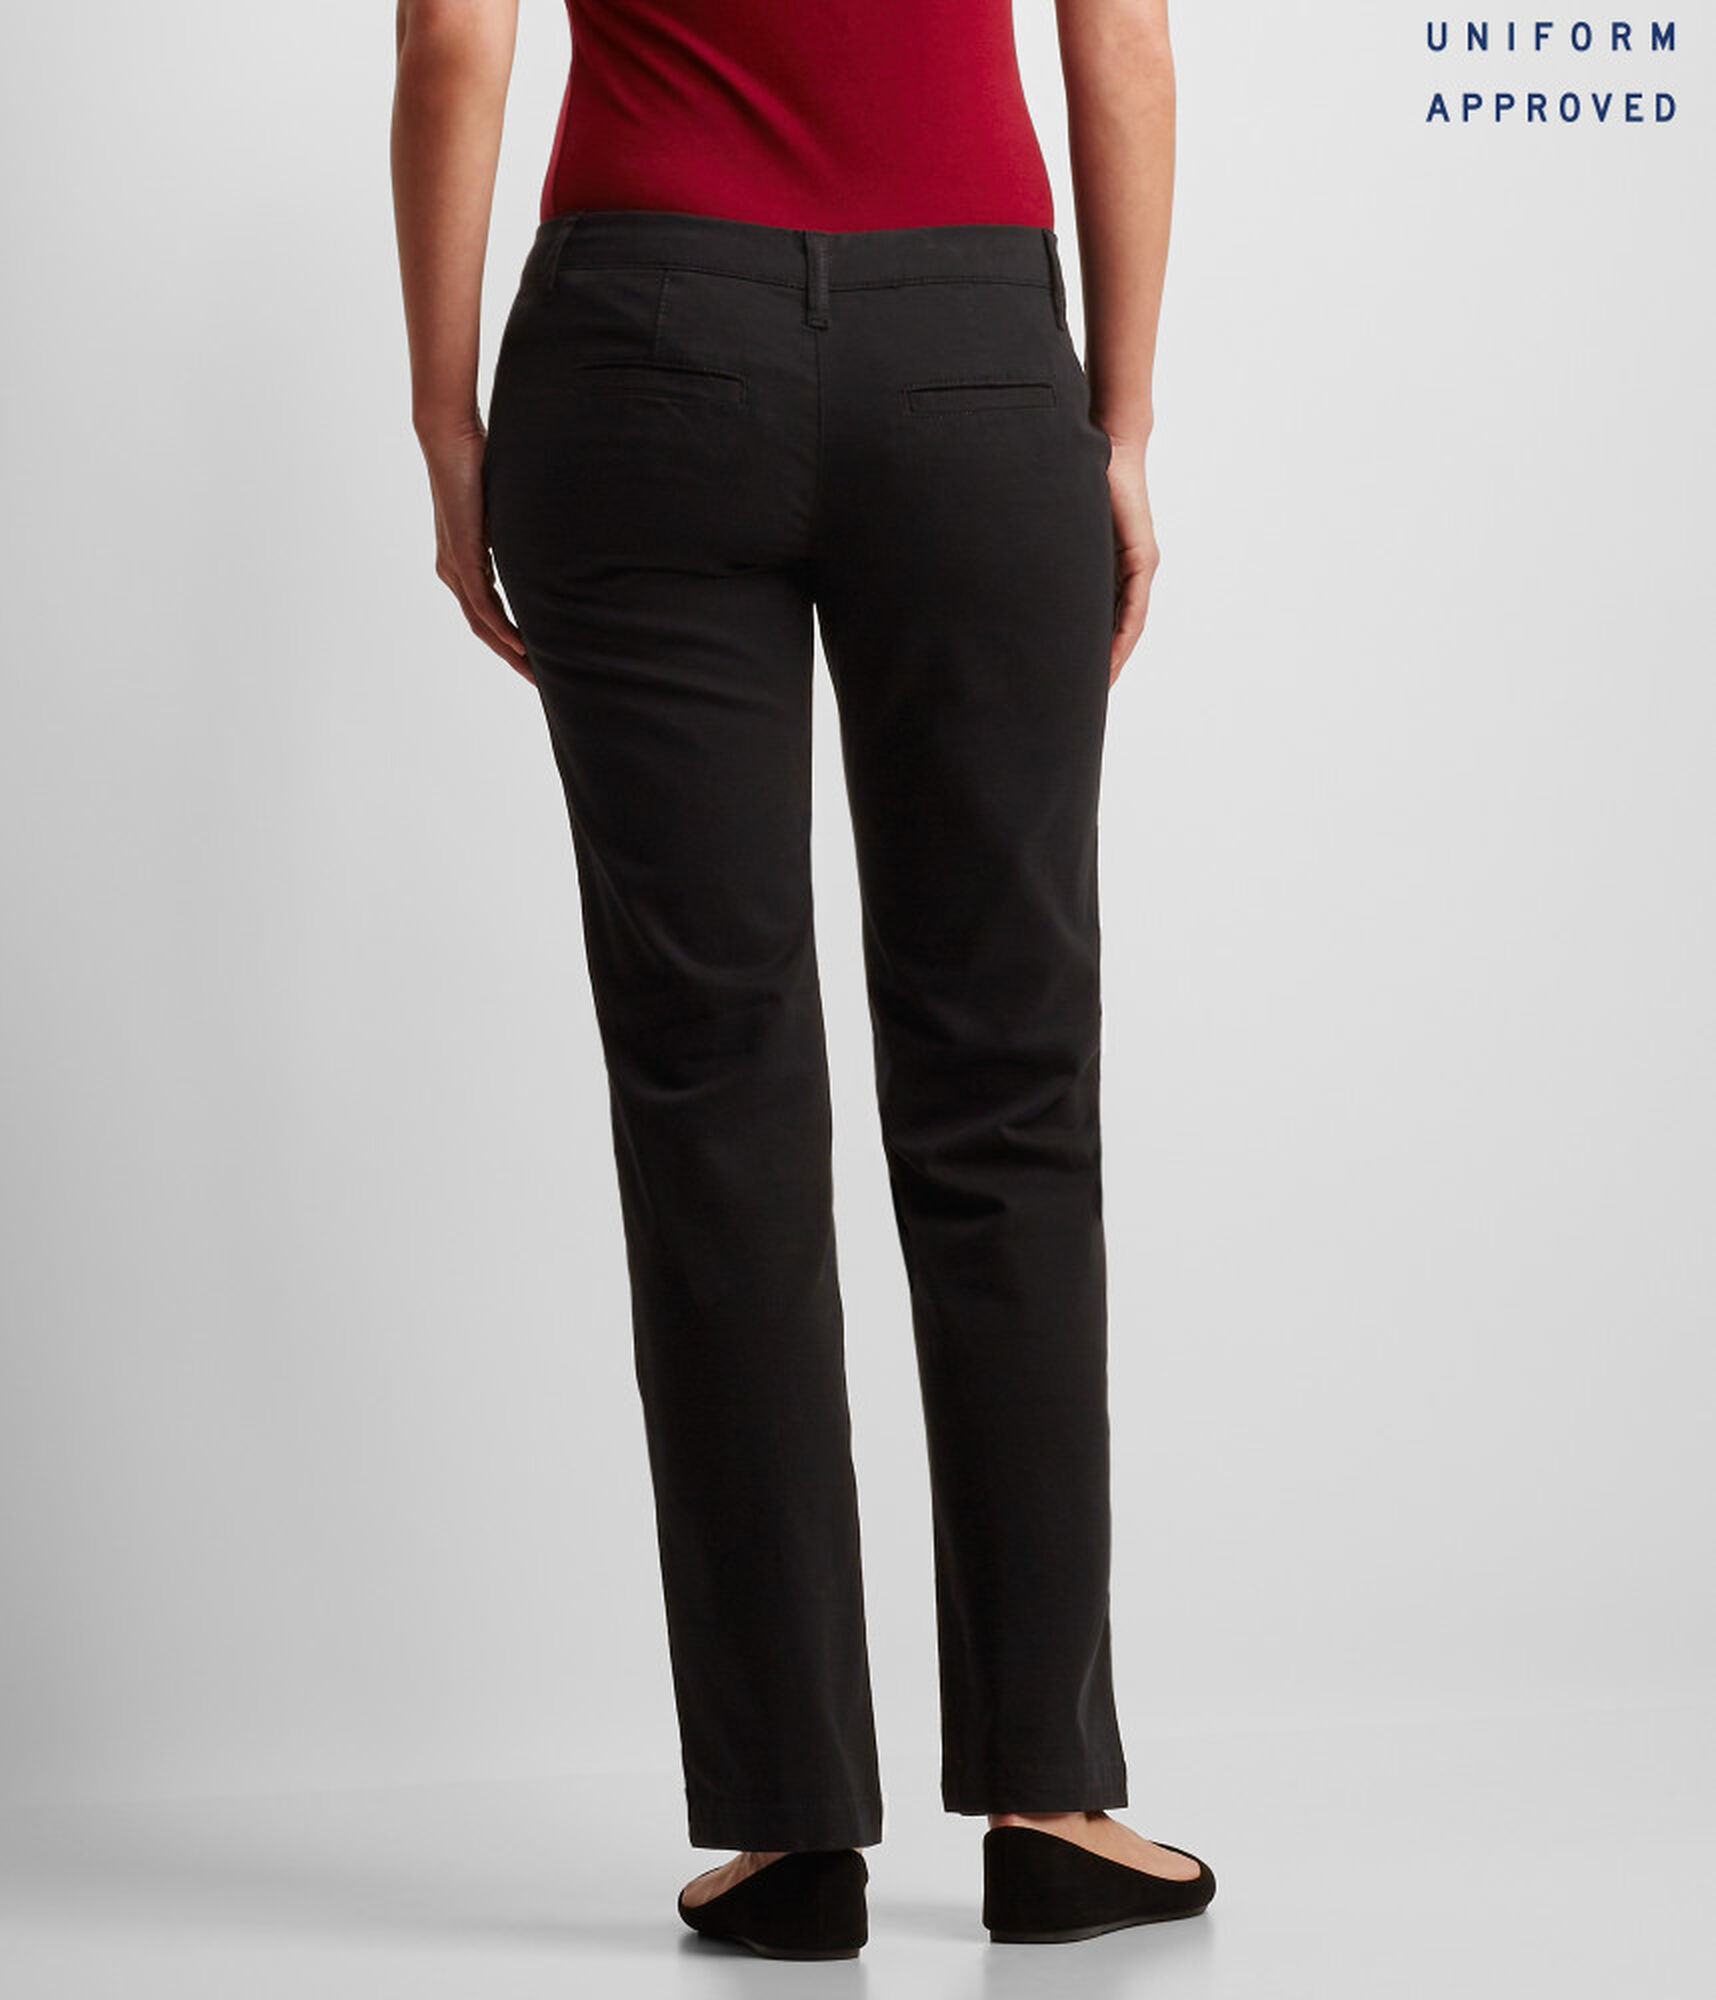 0dd89533bc8 Work Pants for Women